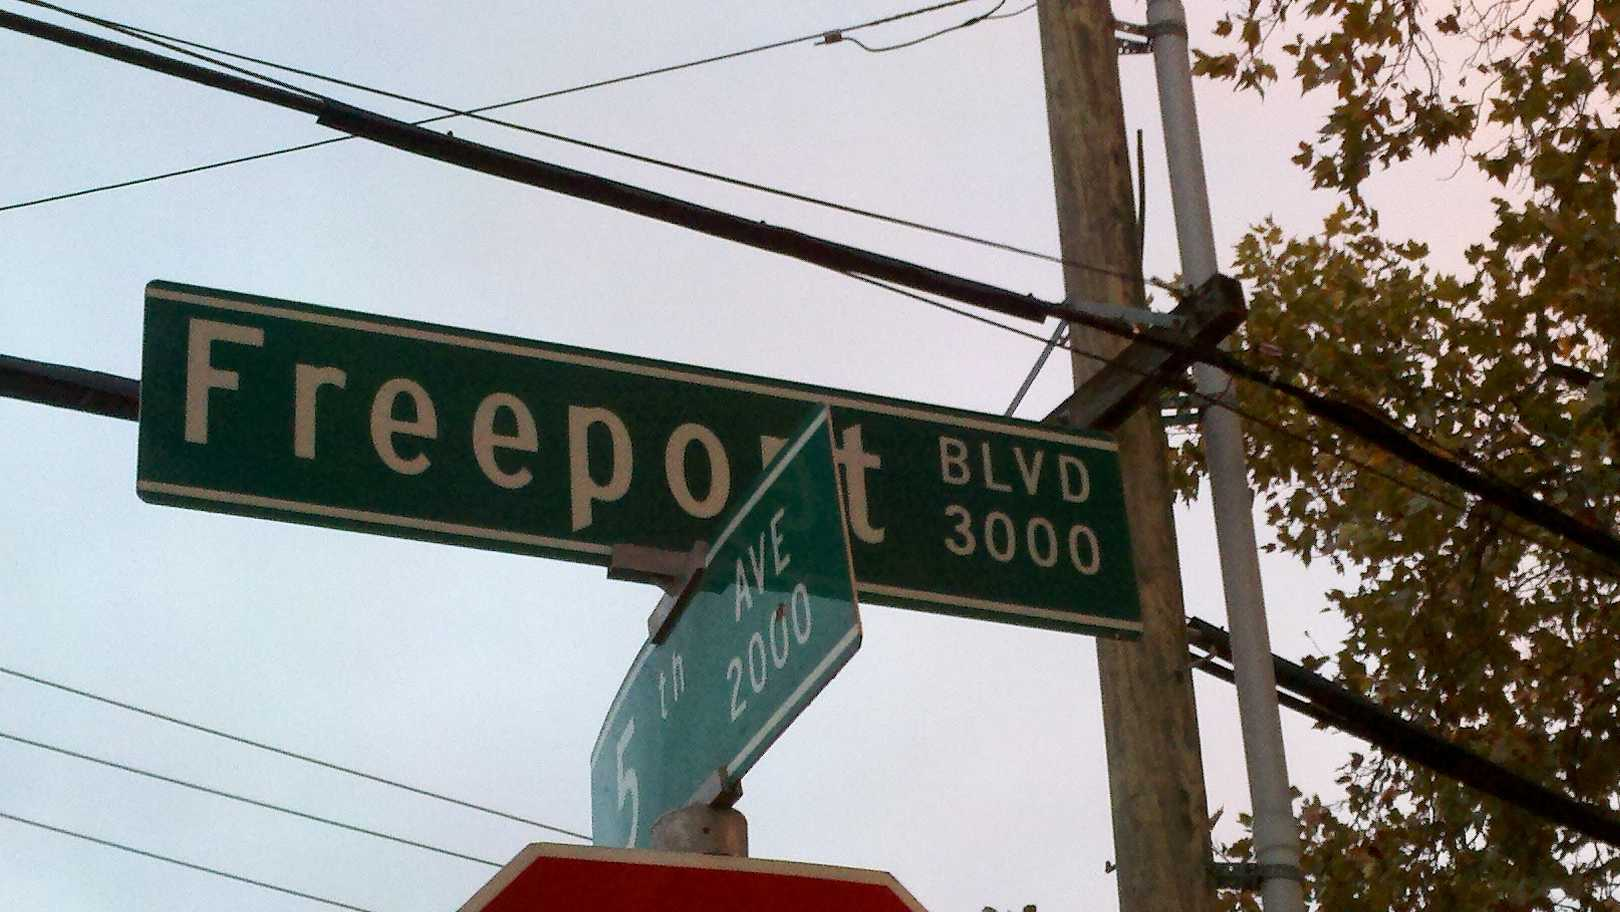 The Sacramento City Council will consider changes to a stretch of Freeport Boulevard.